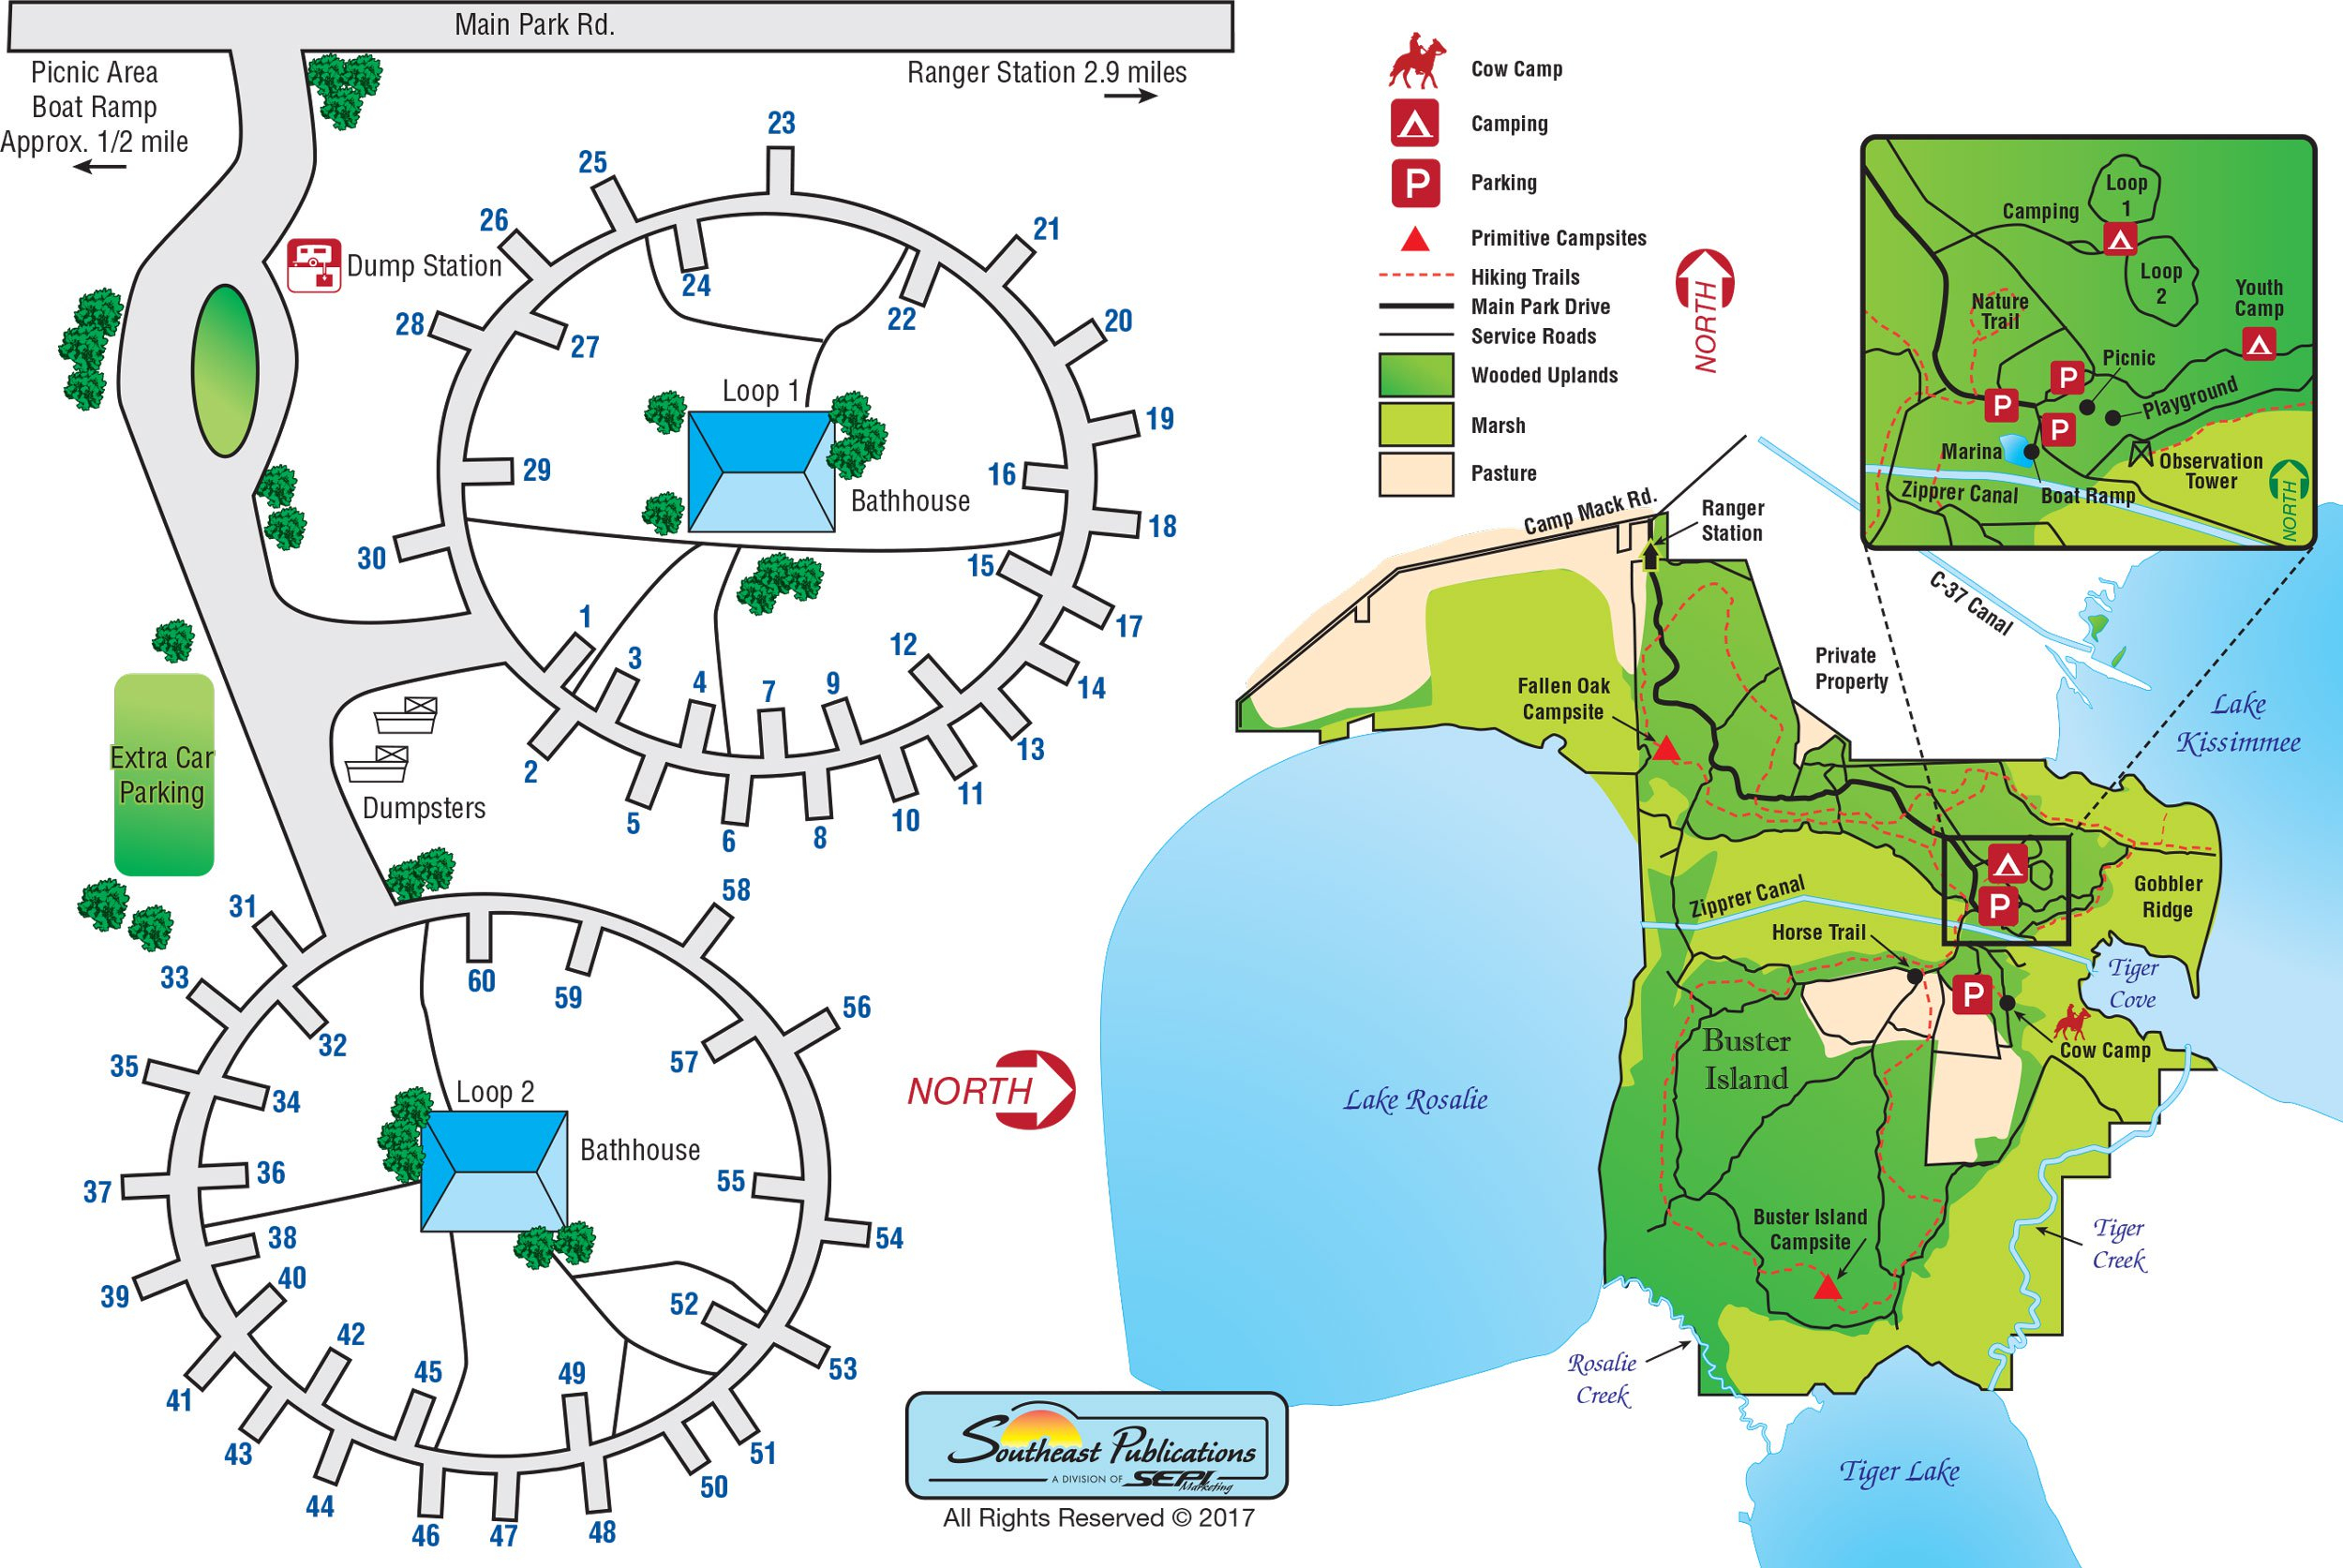 Florida State Parks Rv Camping - Know Your Campground - Florida State Parks Rv Camping Map